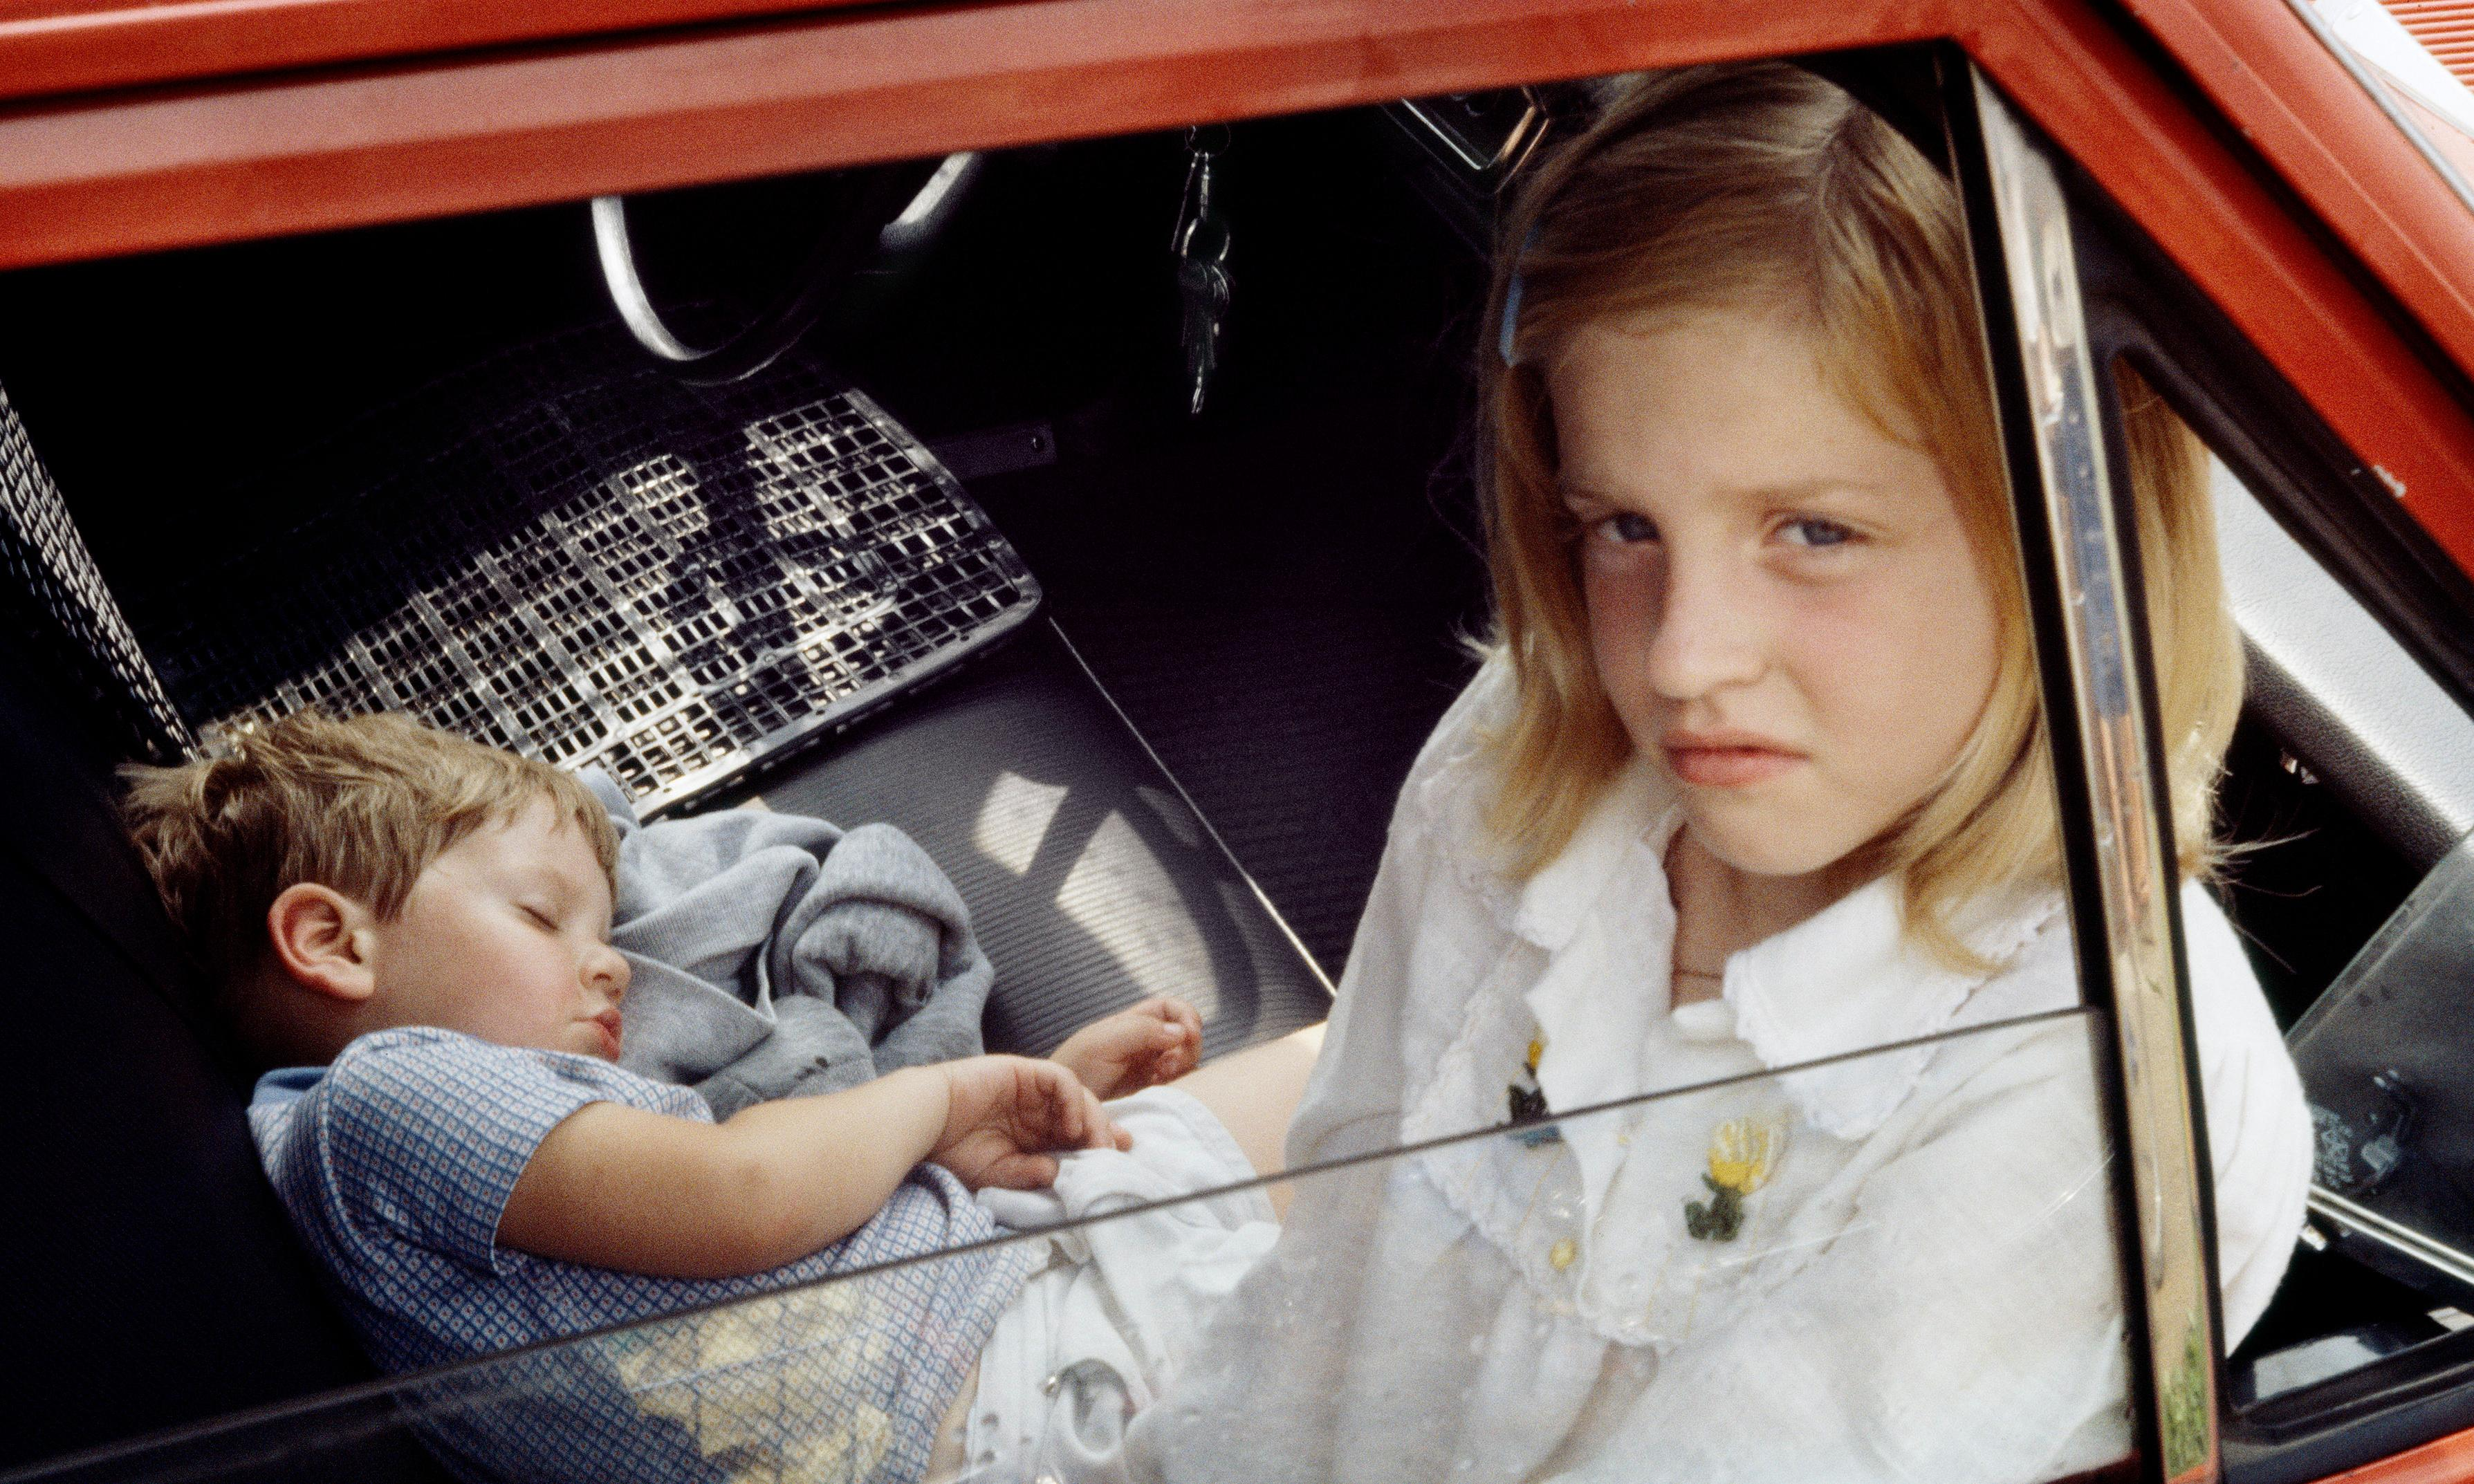 The big picture: an outing with nanny and photographer Vivian Maier